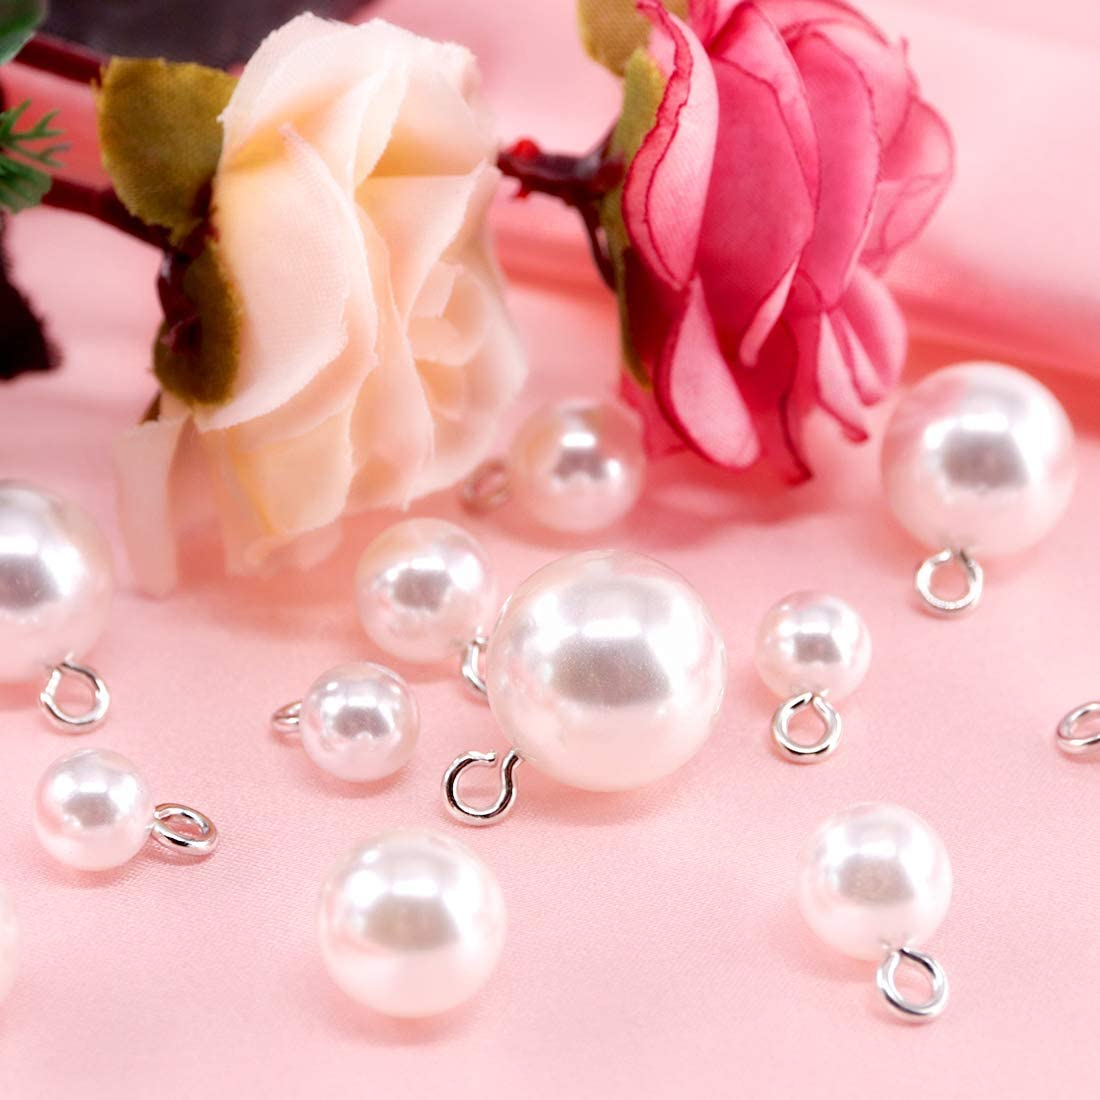 Rustark 90 Pcs White Pearl Button Resin Dome Cap Copper Base Pearl Buttons with Shank DIY Embellishments Beads/Buttons for Jewelry Clothes Bags Shoes Wedding Dress and Crafting 8mm to 16mm